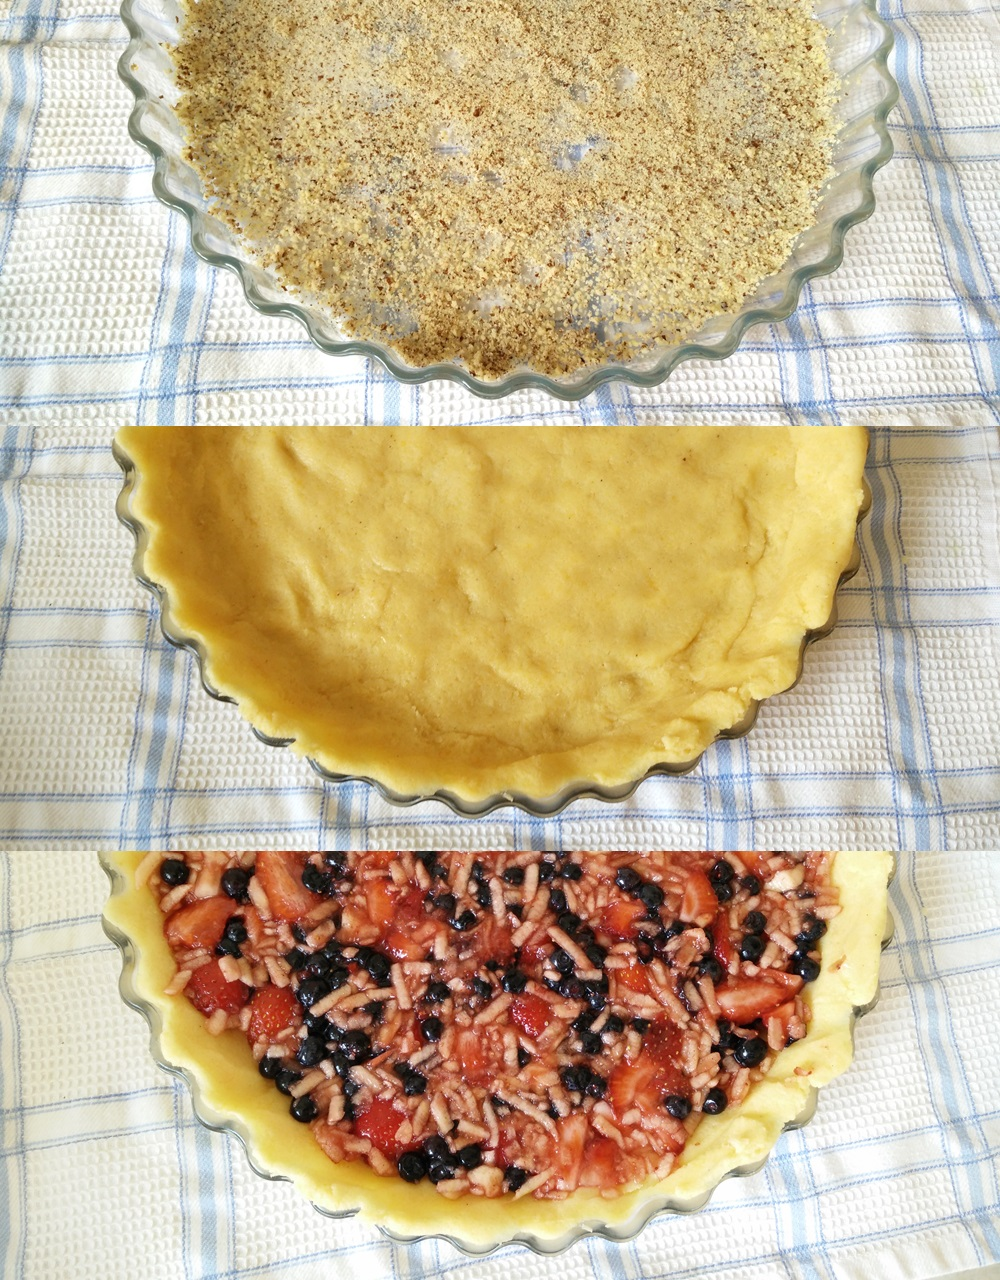 Berry_Strawberry_Blueberry_pie_recipe_Zala_Zagoricnik_1